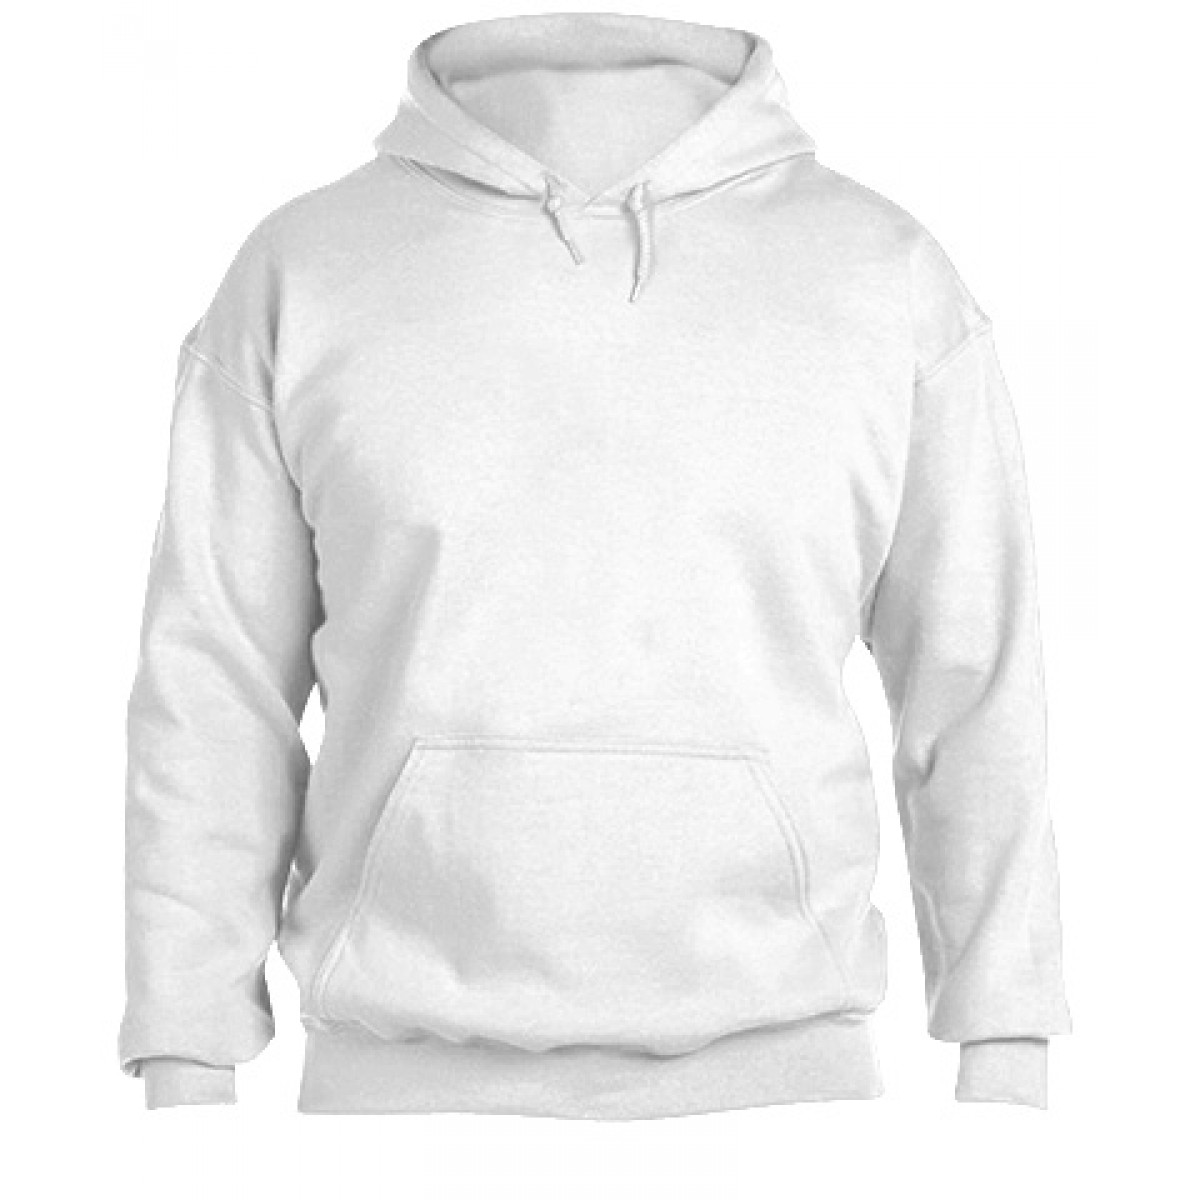 Hooded Sweatshirt 50/50 Heavy Blend-White-YS